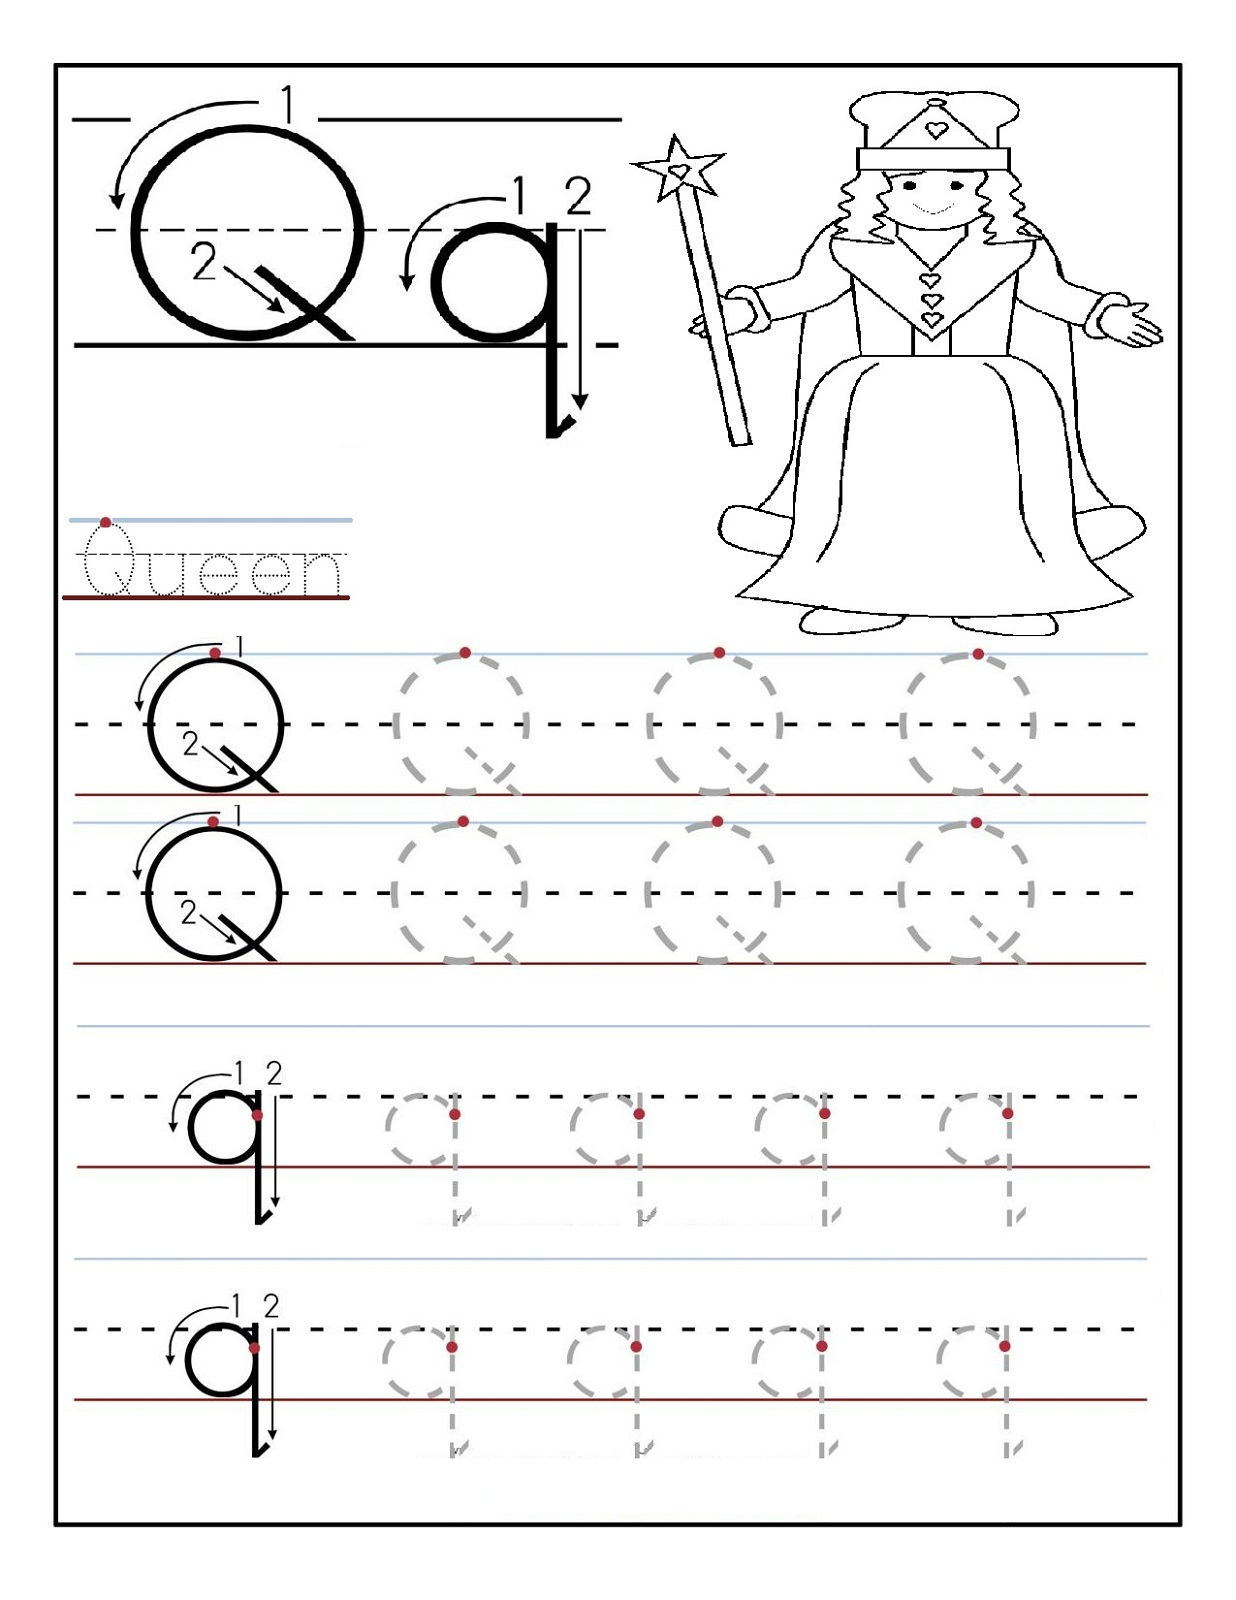 Preschool Alphabet Worksheets Queen Activity Shelter